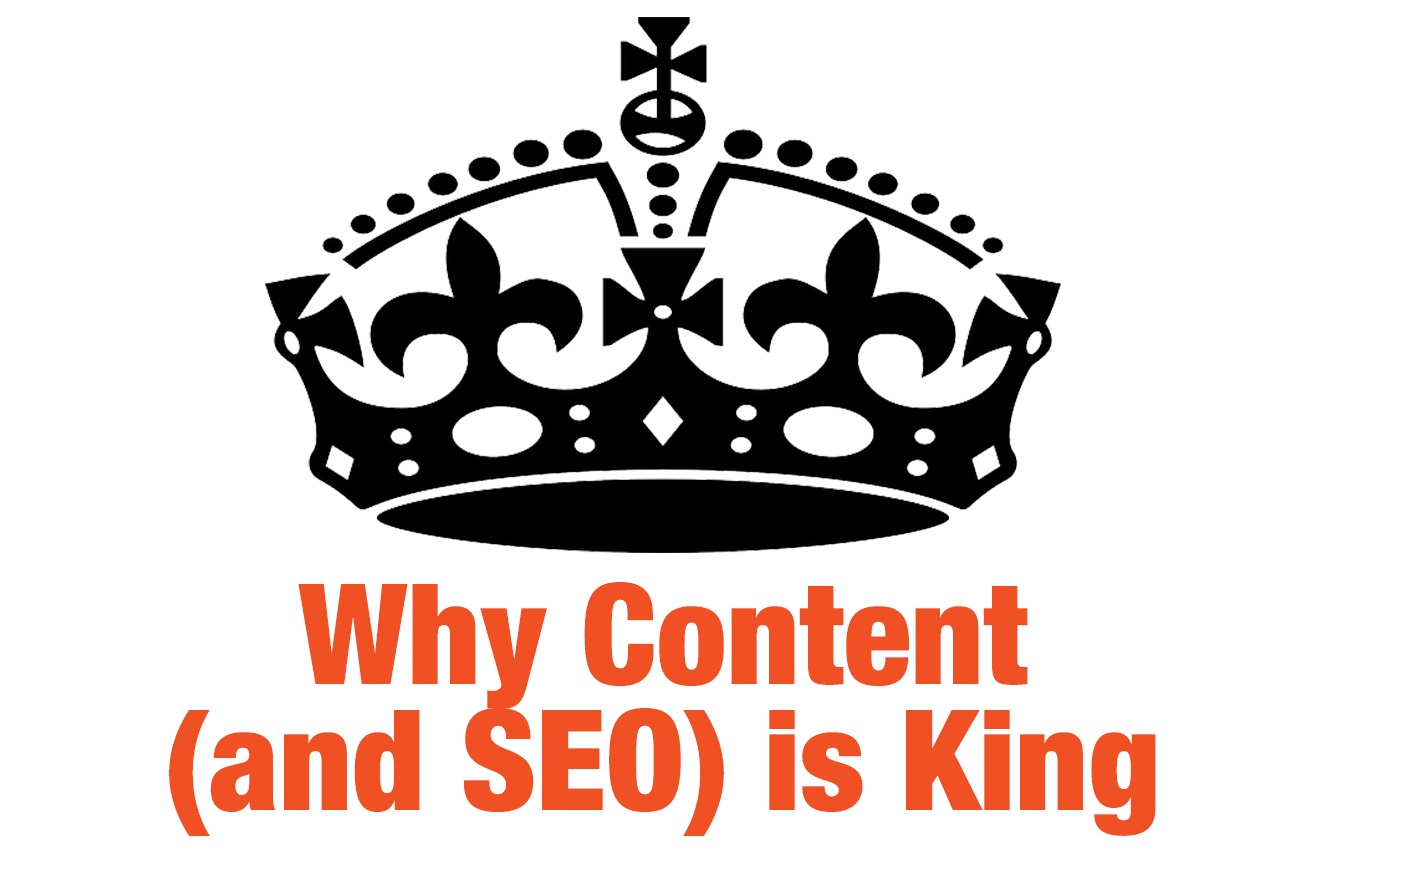 Why Content and SEO is king